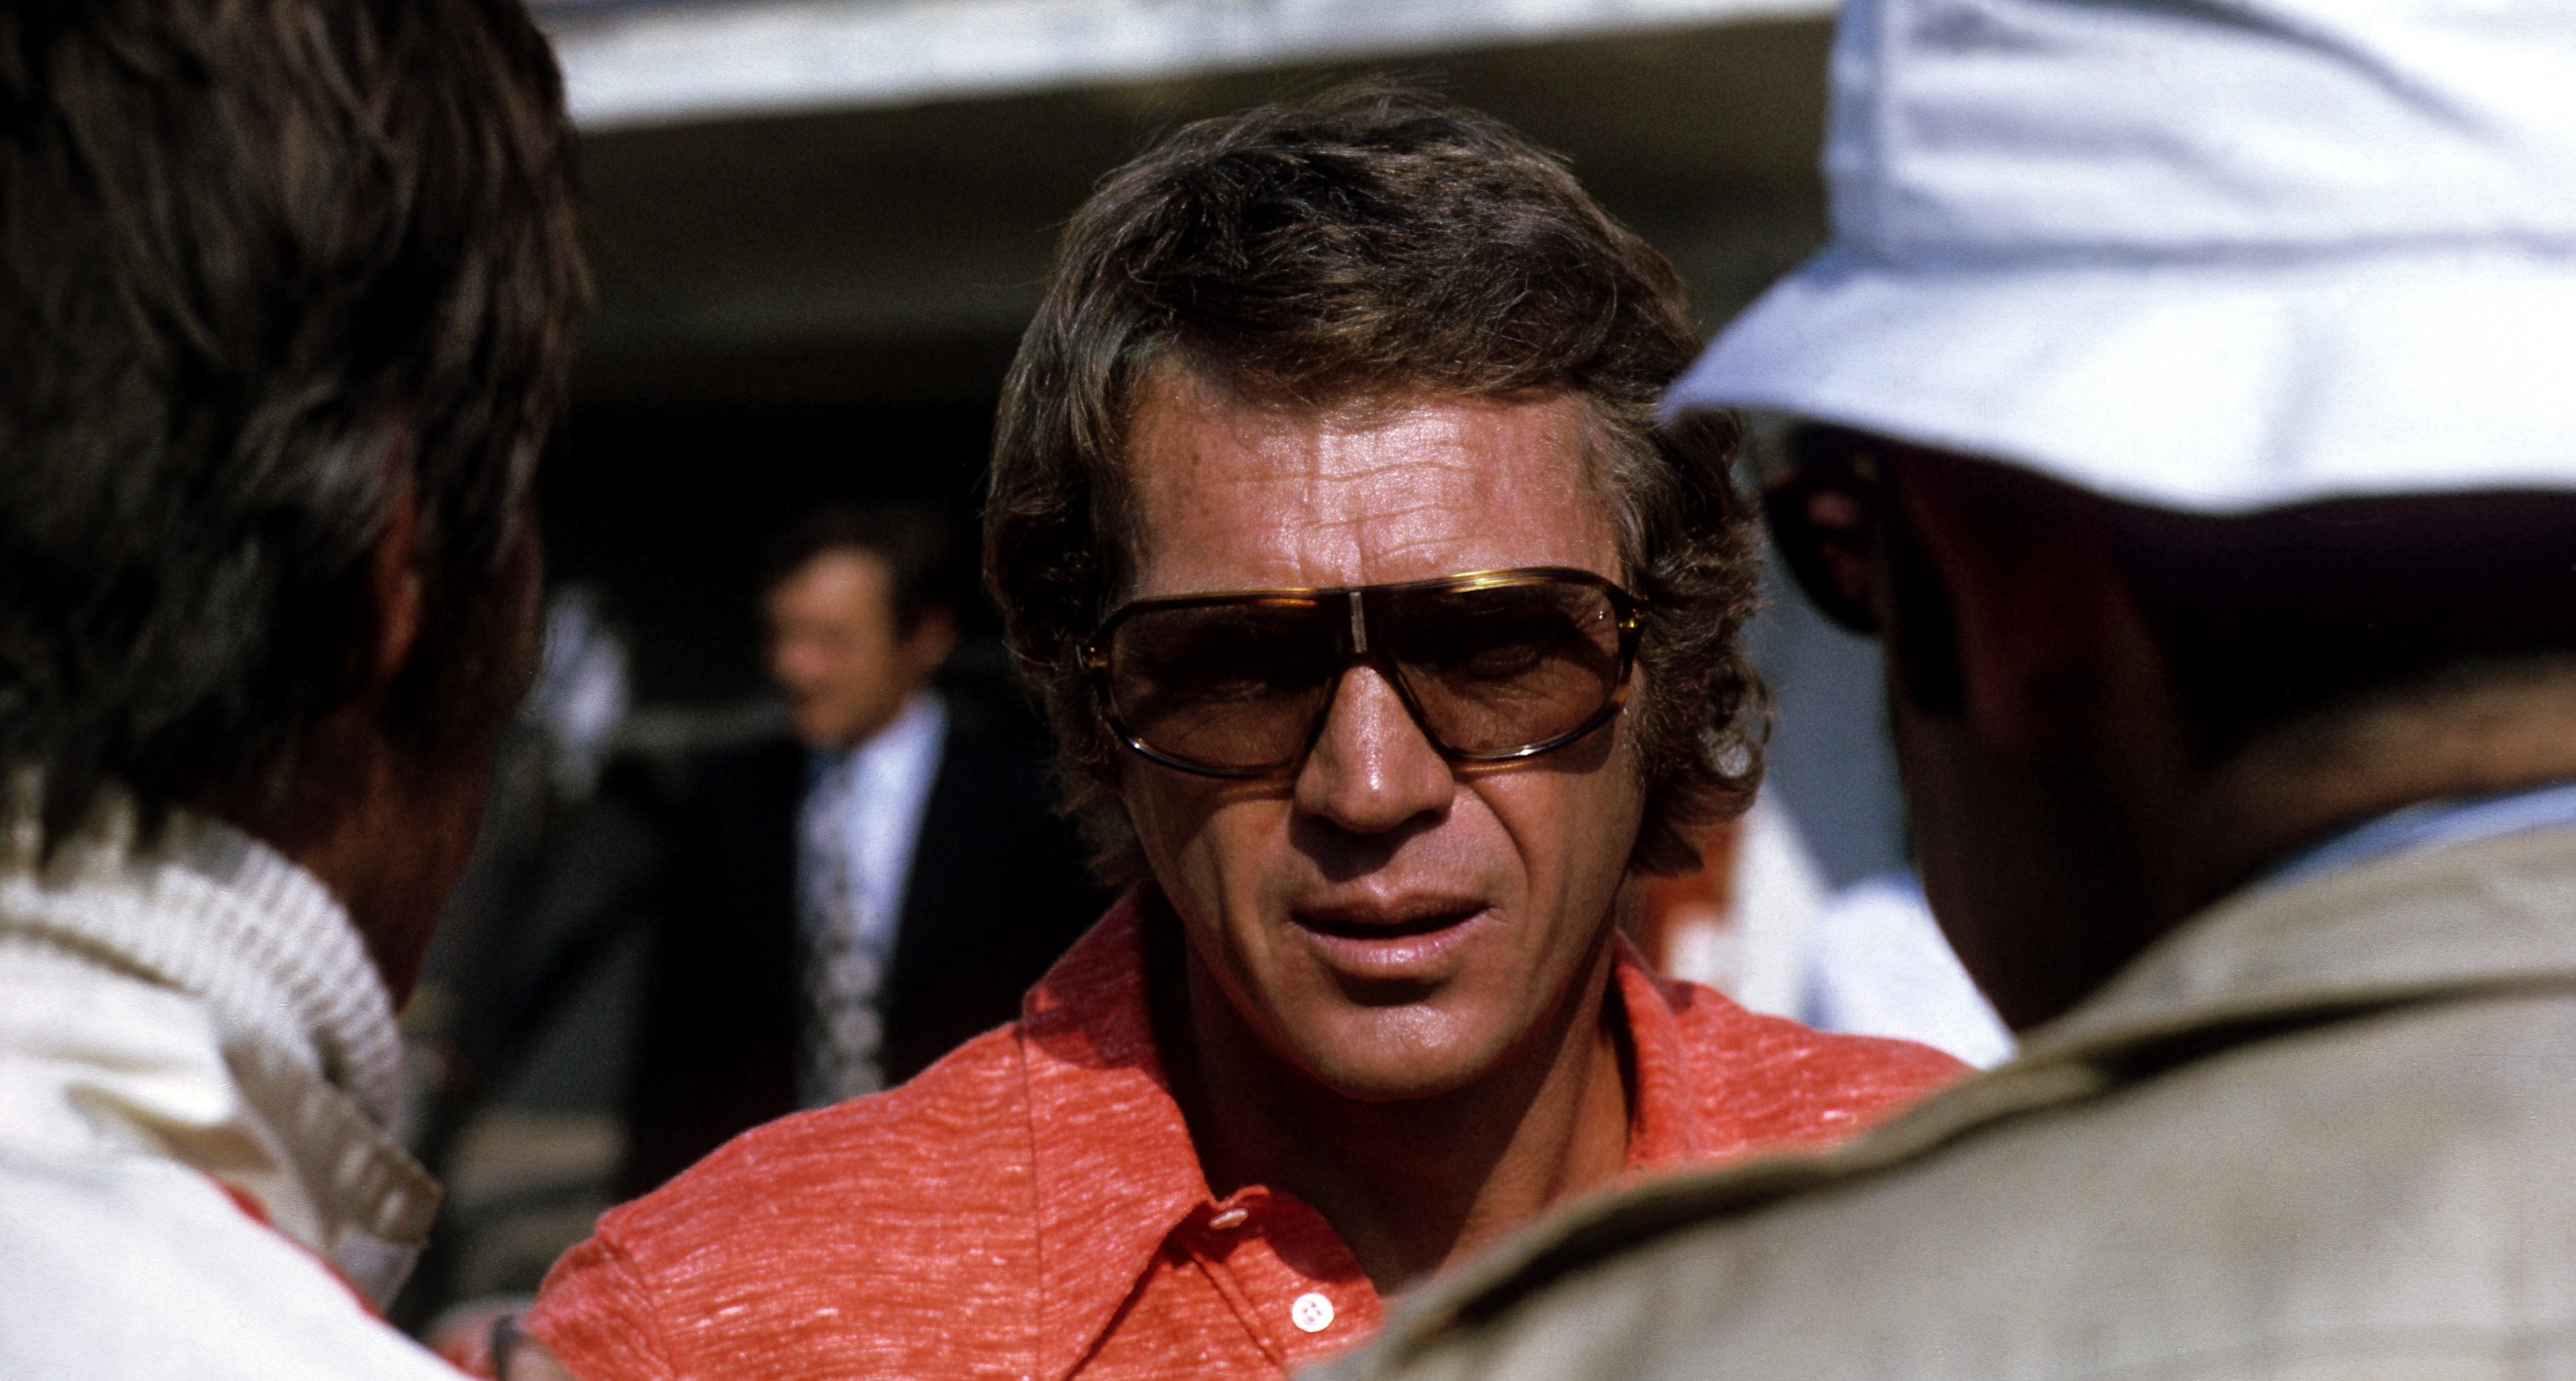 Steve McQueen on the set of 'Le Mans' in 1971.